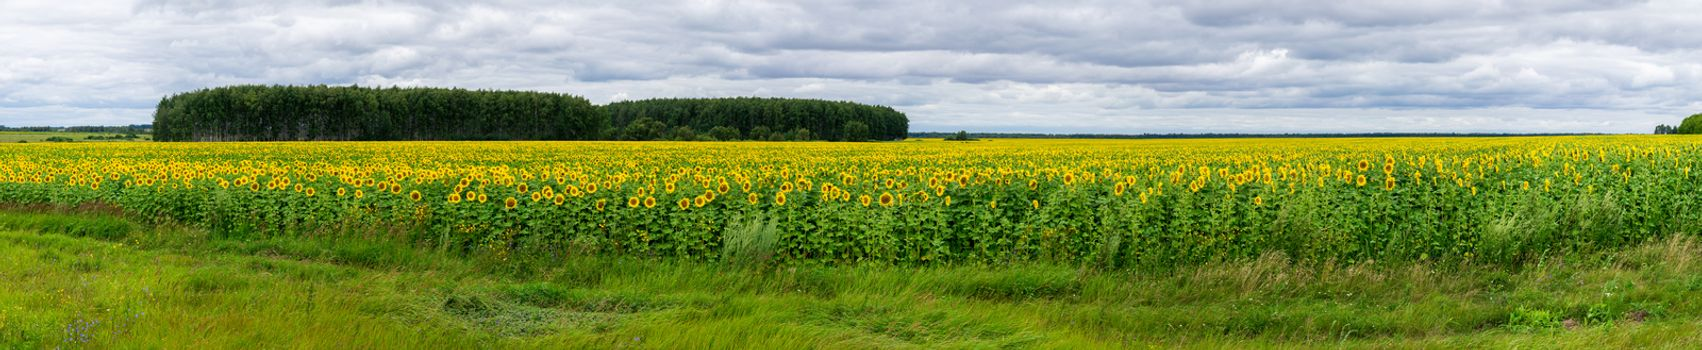 The photo shows a field of sunflowers